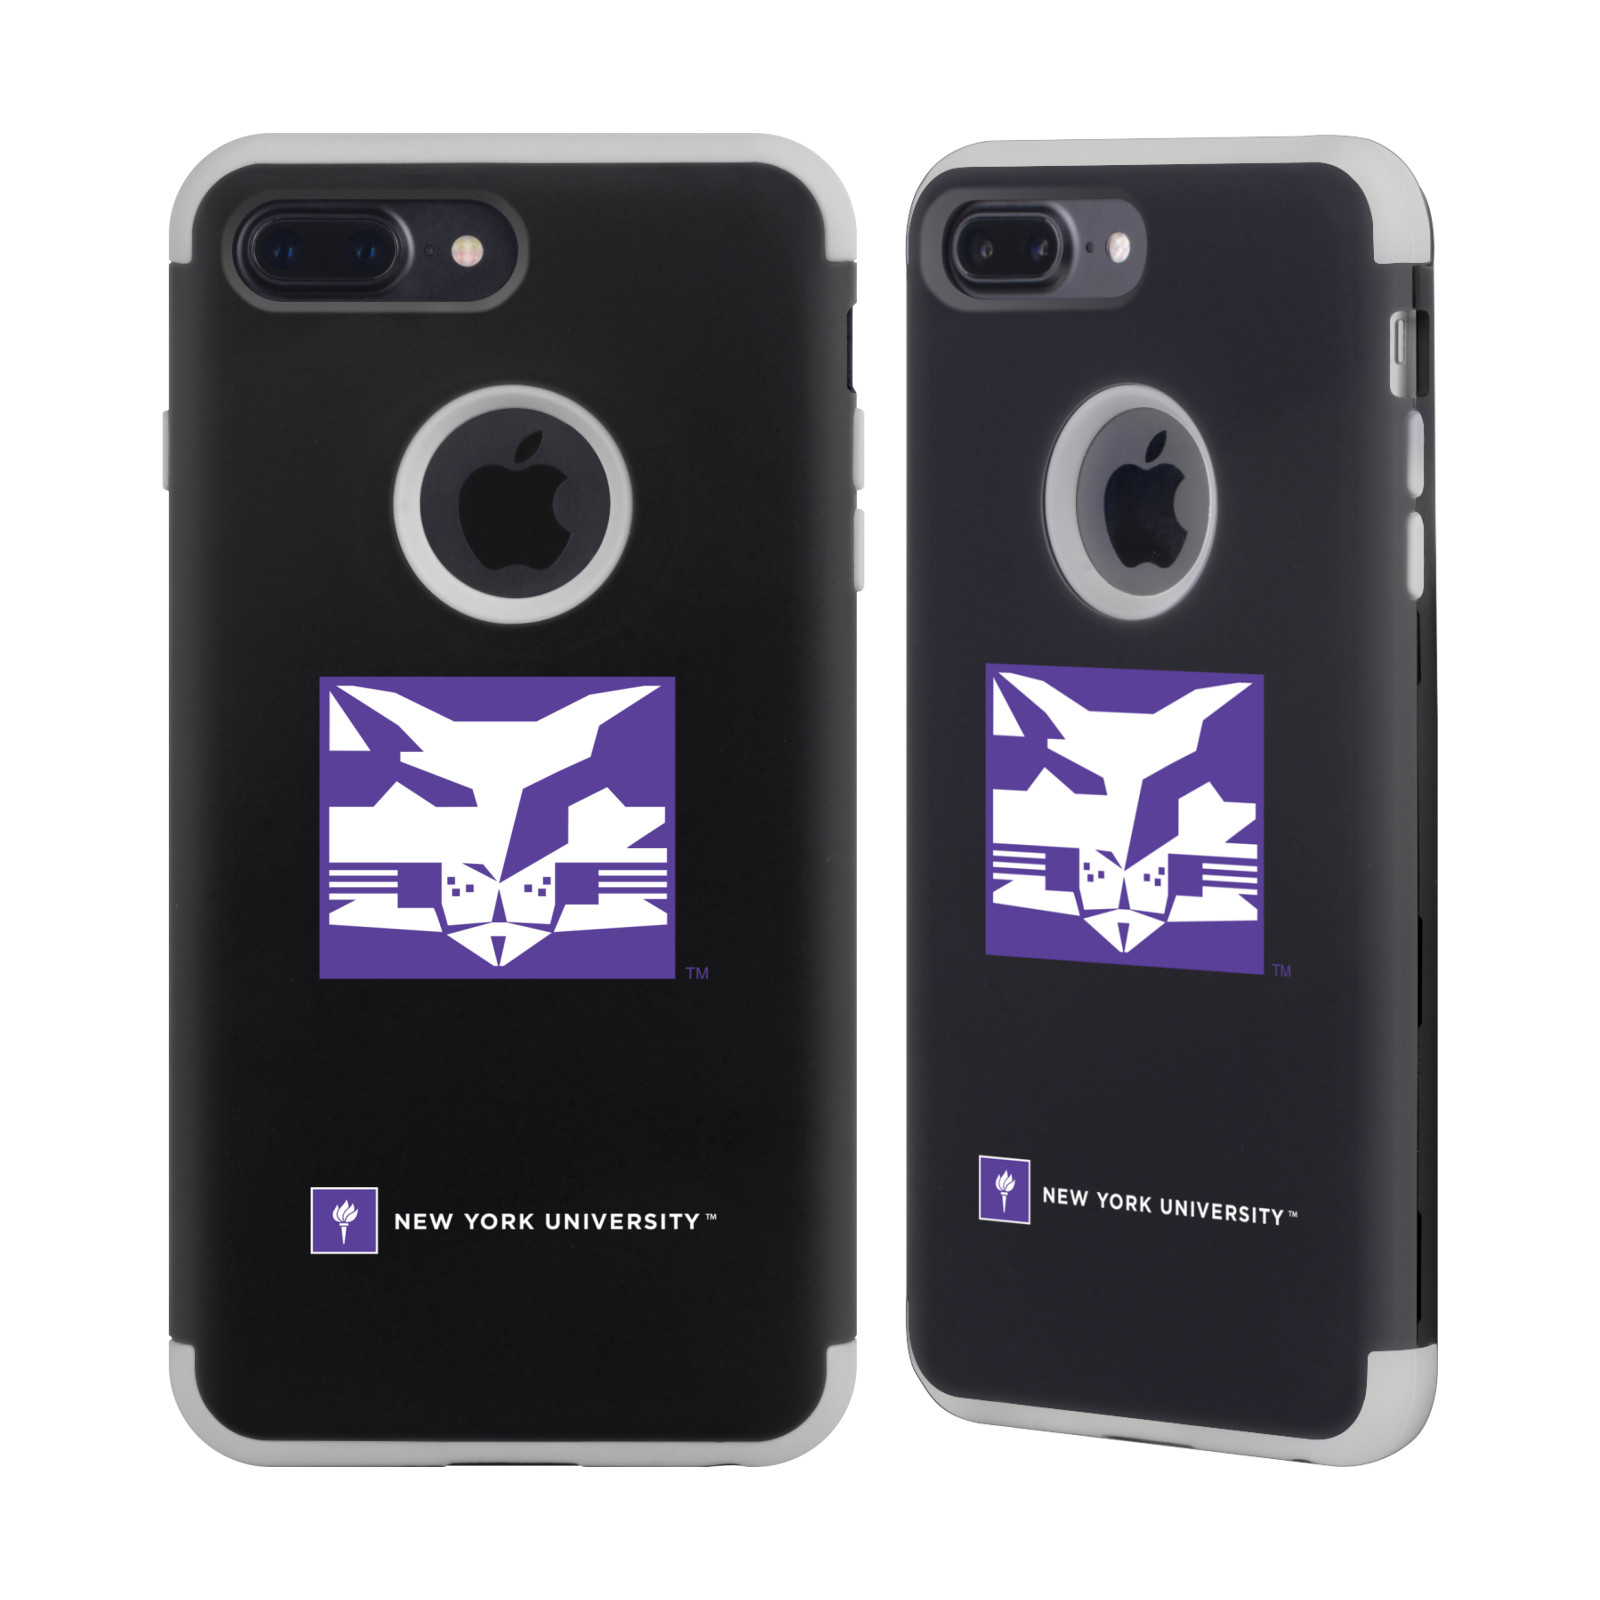 OFFICIAL-NEW-YORK-UNIVERSITY-NYU-2-GREY-GUARDIAN-CASE-FOR-APPLE-iPHONE-PHONES